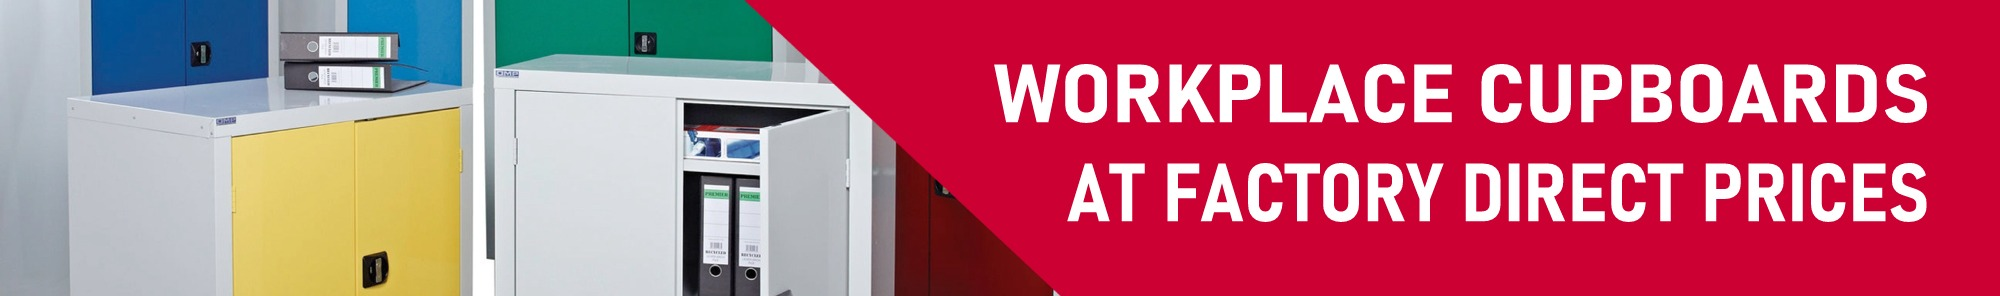 WORKPLACE CUPBOARDS AT FACTORY DIRECT PRICES